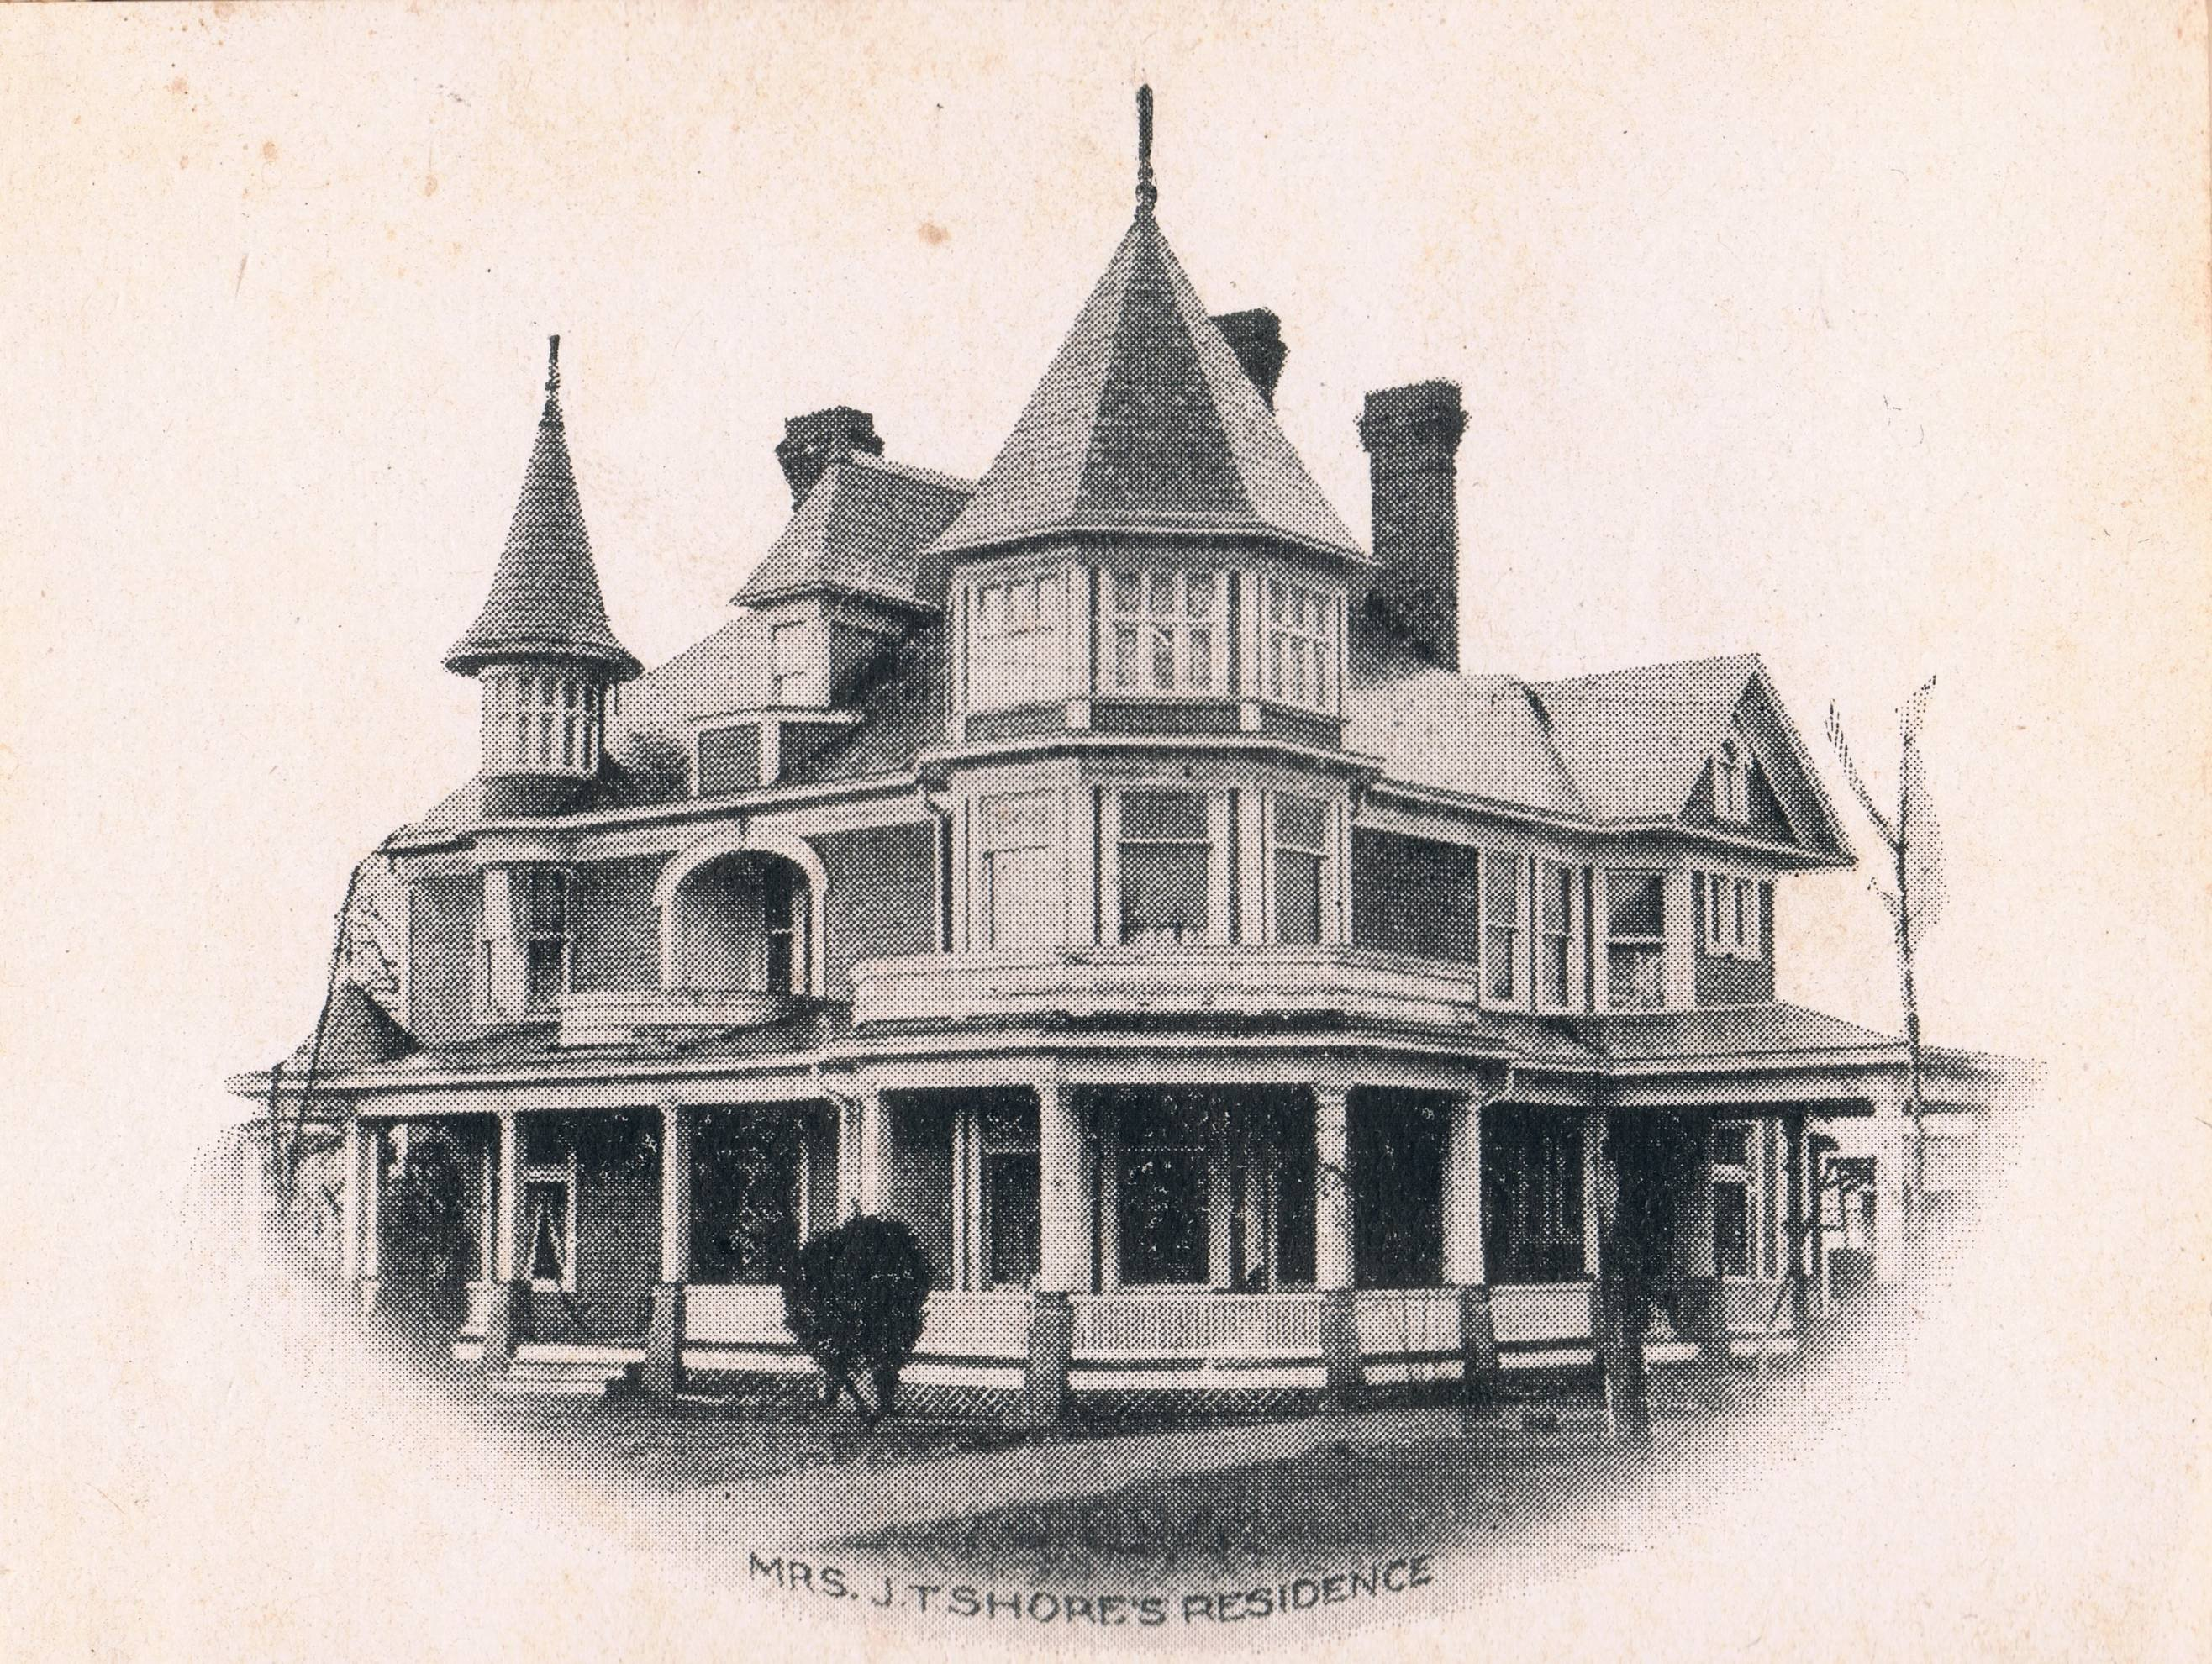 Powell-Shore House in Middlebourne